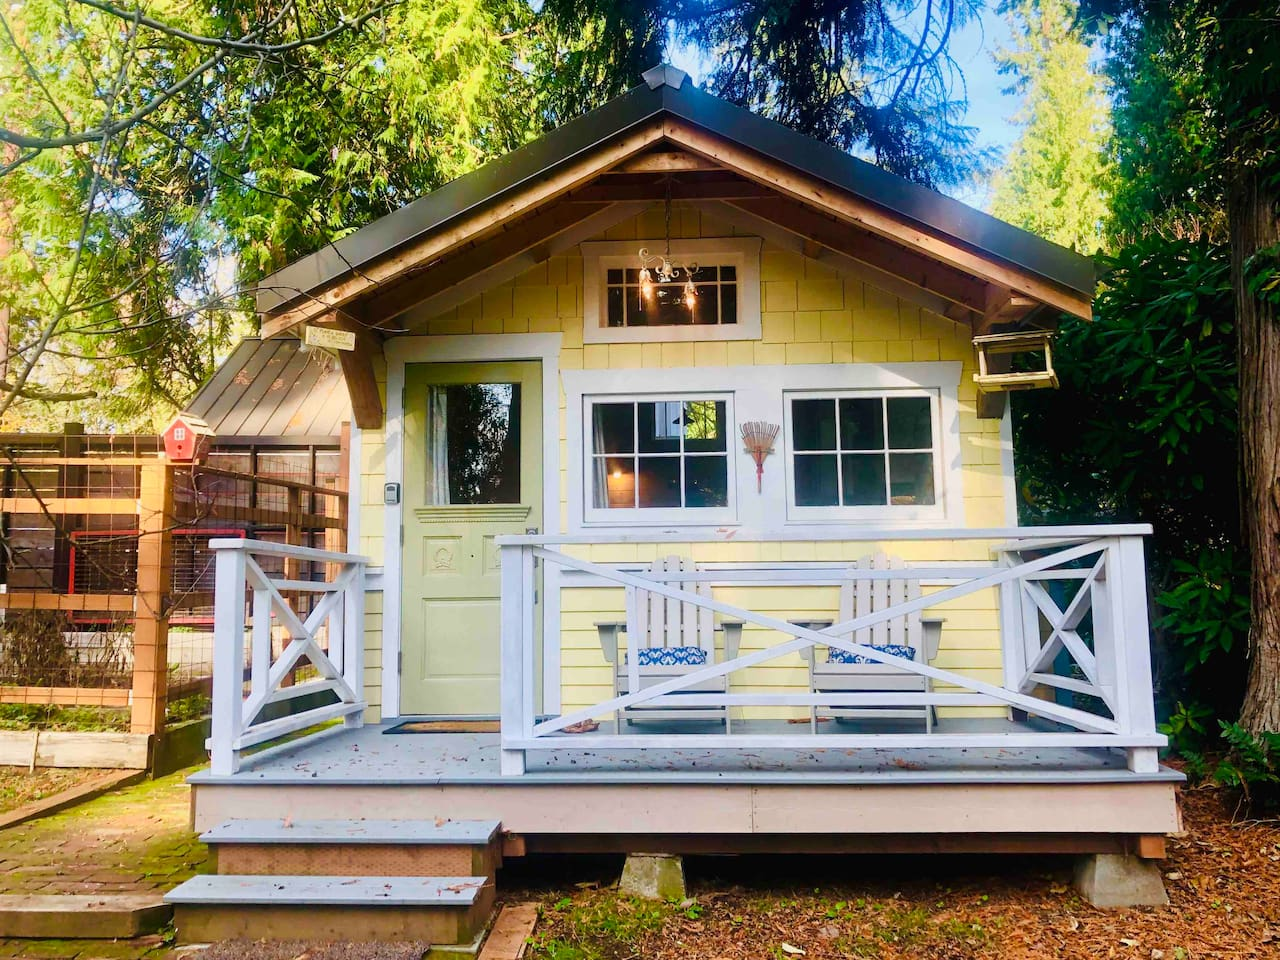 Nestled at the edge of our property under a huge cedar tree, enjoy coffee on your own tiny front porch.  This is a fall view of the tiny house exterior. The cedar trees provide year-round greenery.